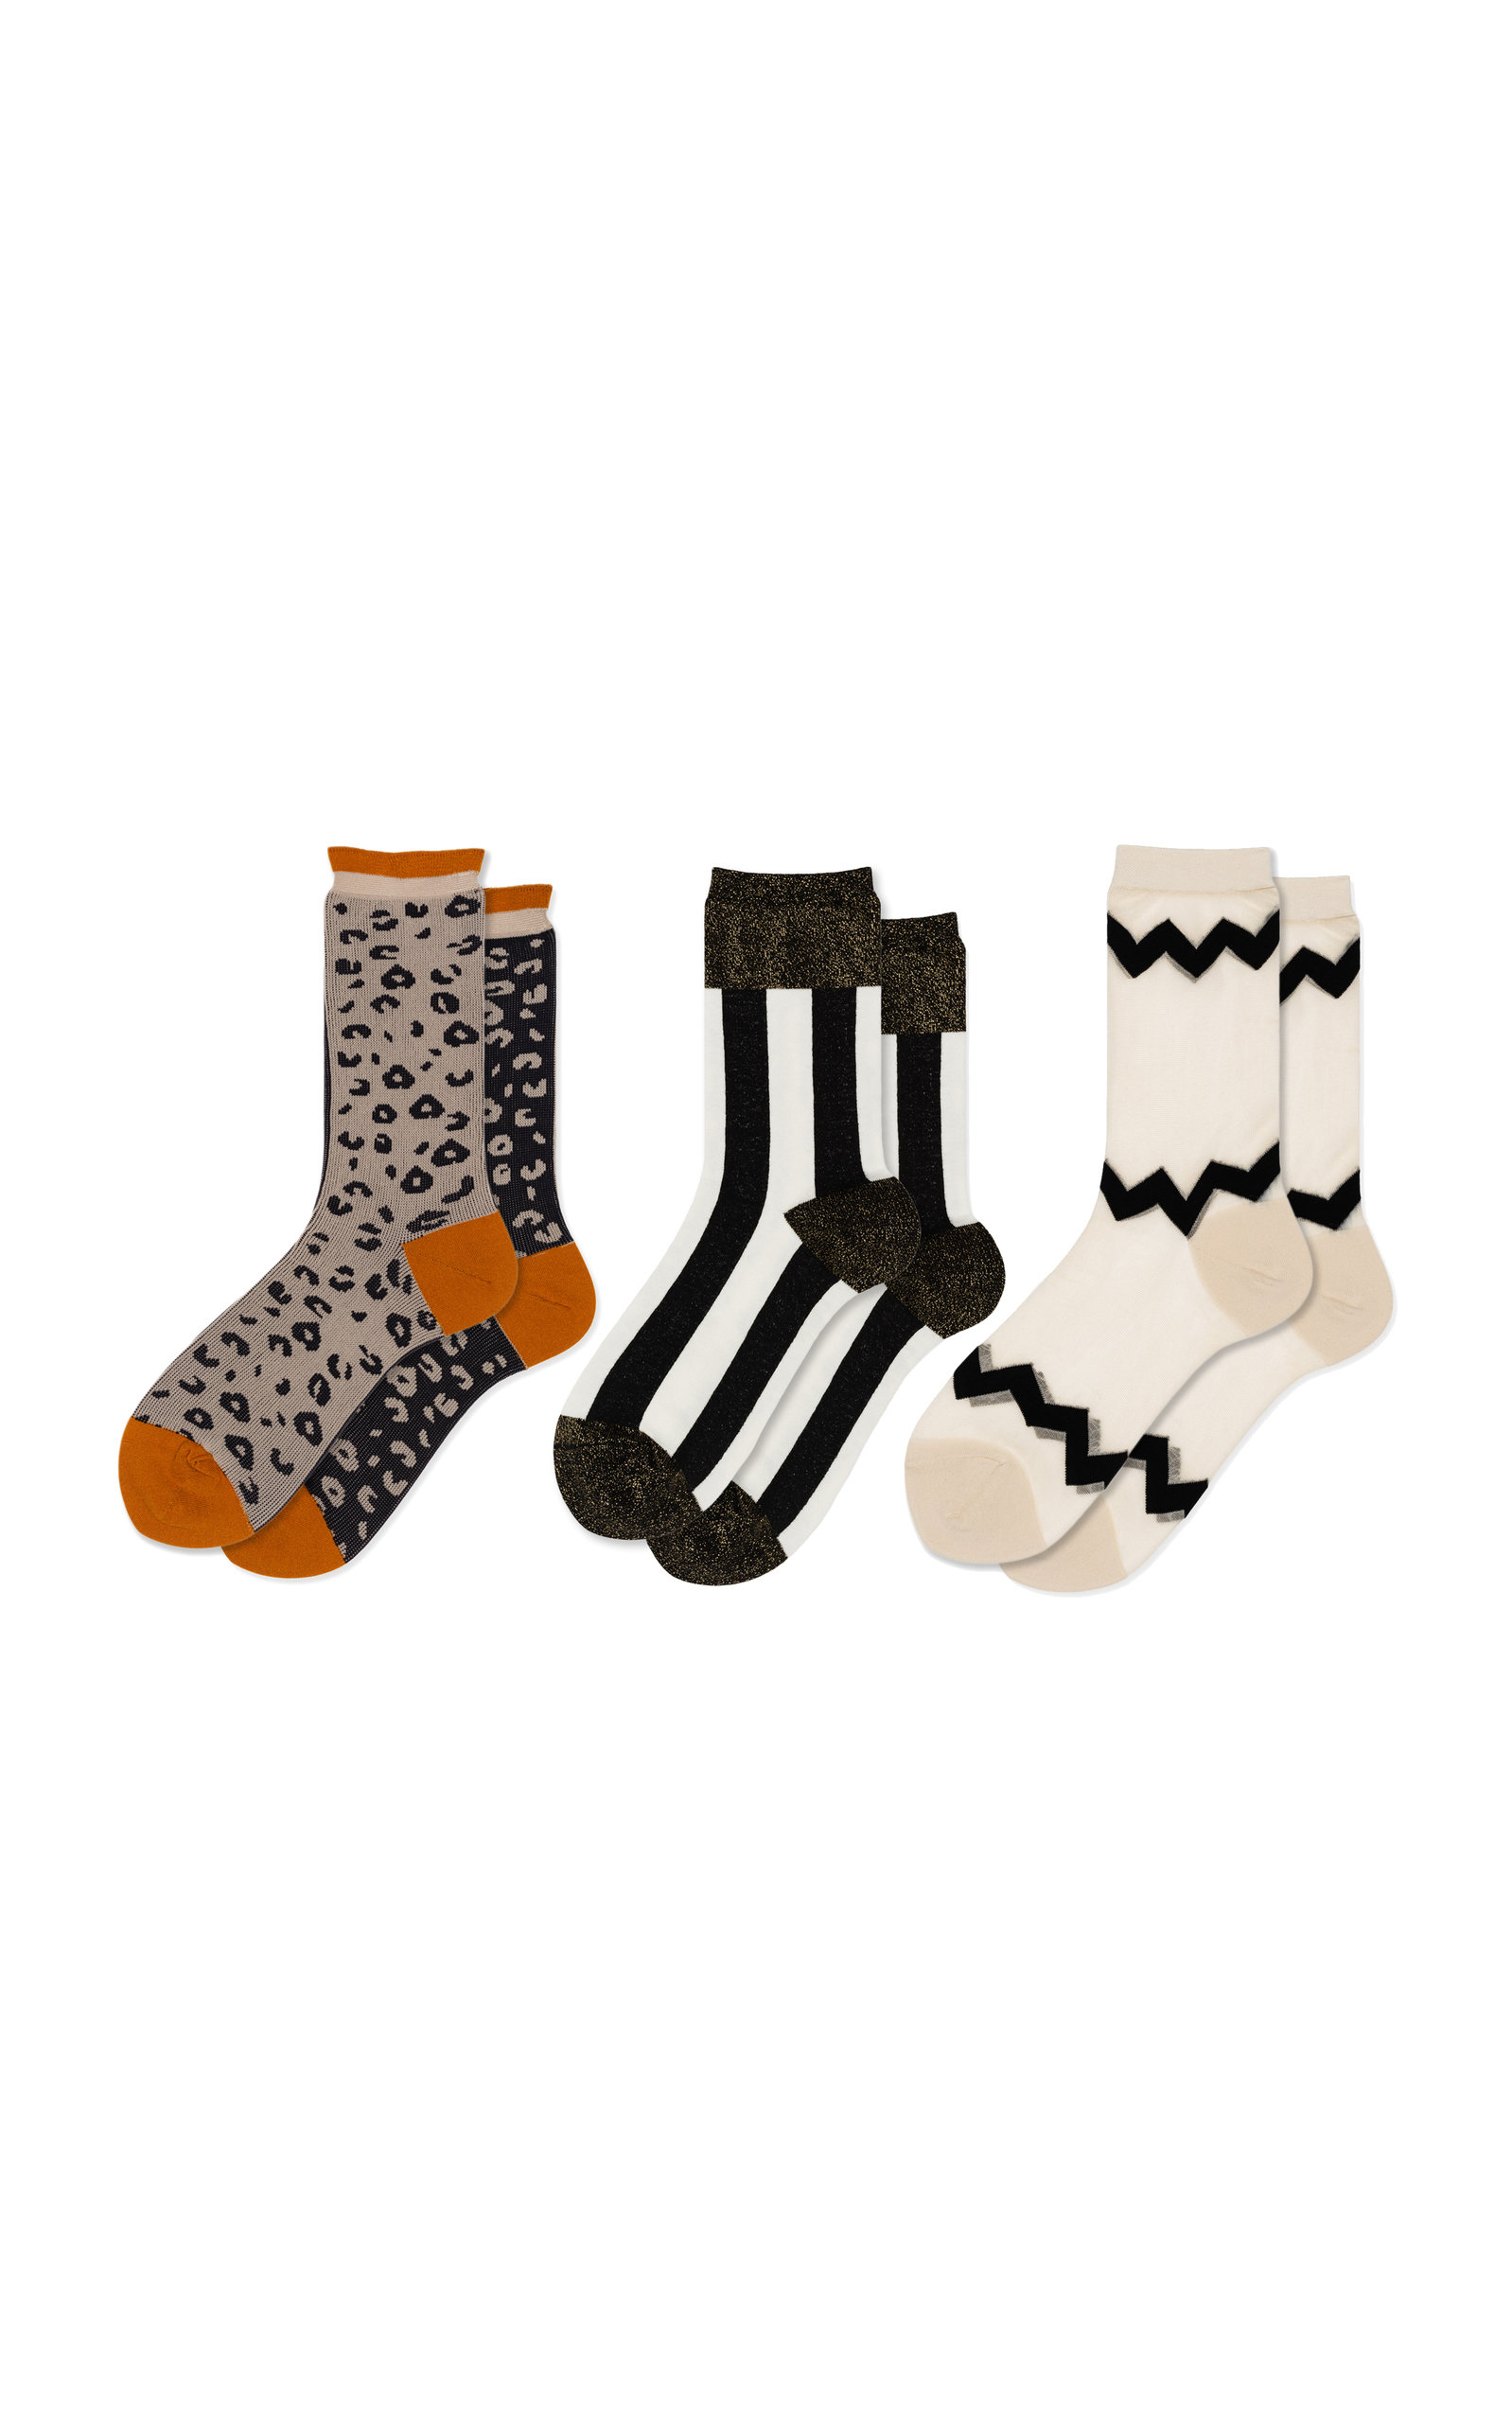 HANSEL FROM BASEL Set-Of-Three Crazy Printed Jersey Crew Socks in Multi